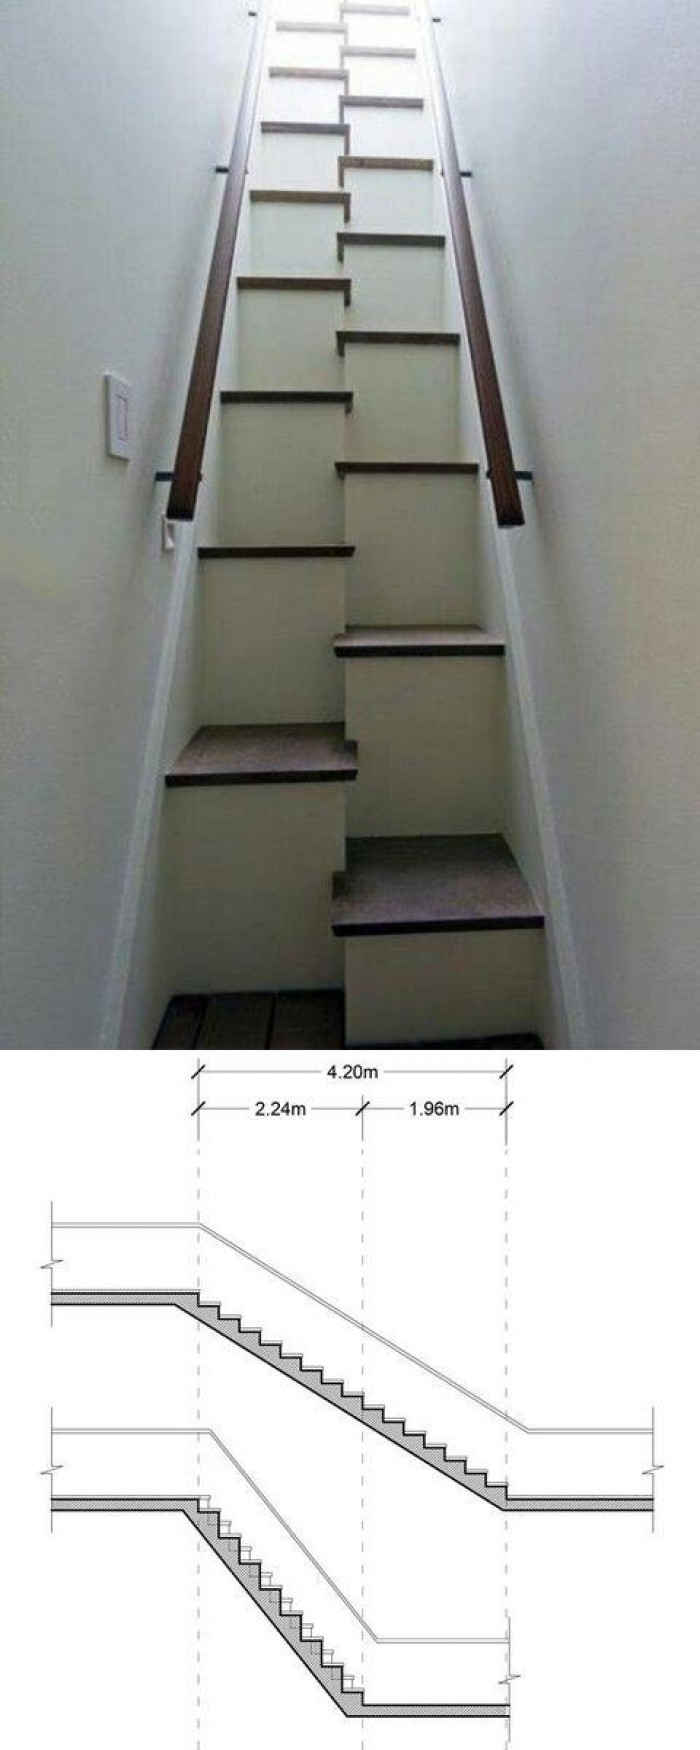 There is a reason to build stairs like this.